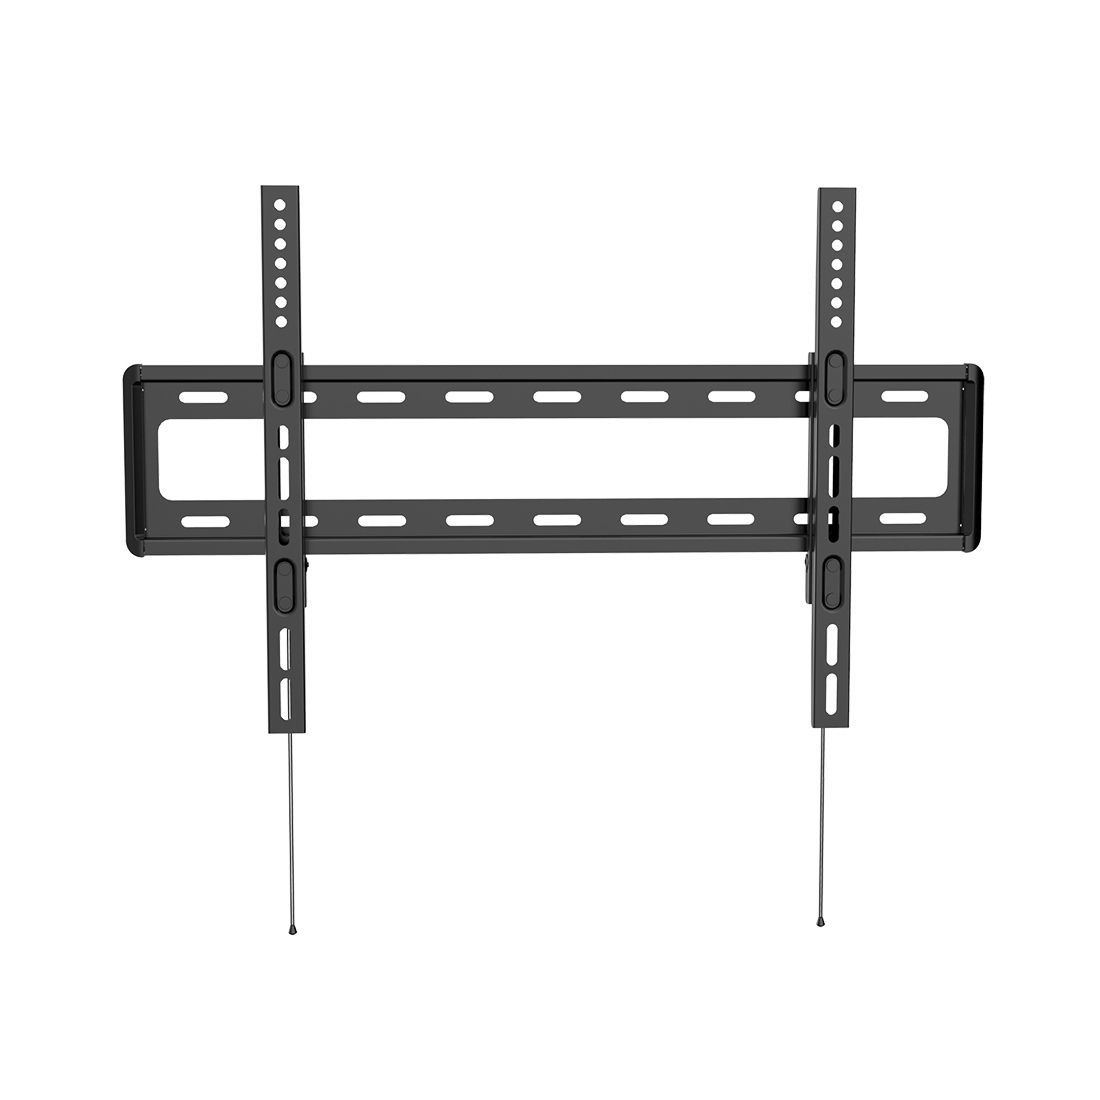 Curved Panel TV Wall Mount Bracket for 32 in. Both Flat and Curved Panel TVs